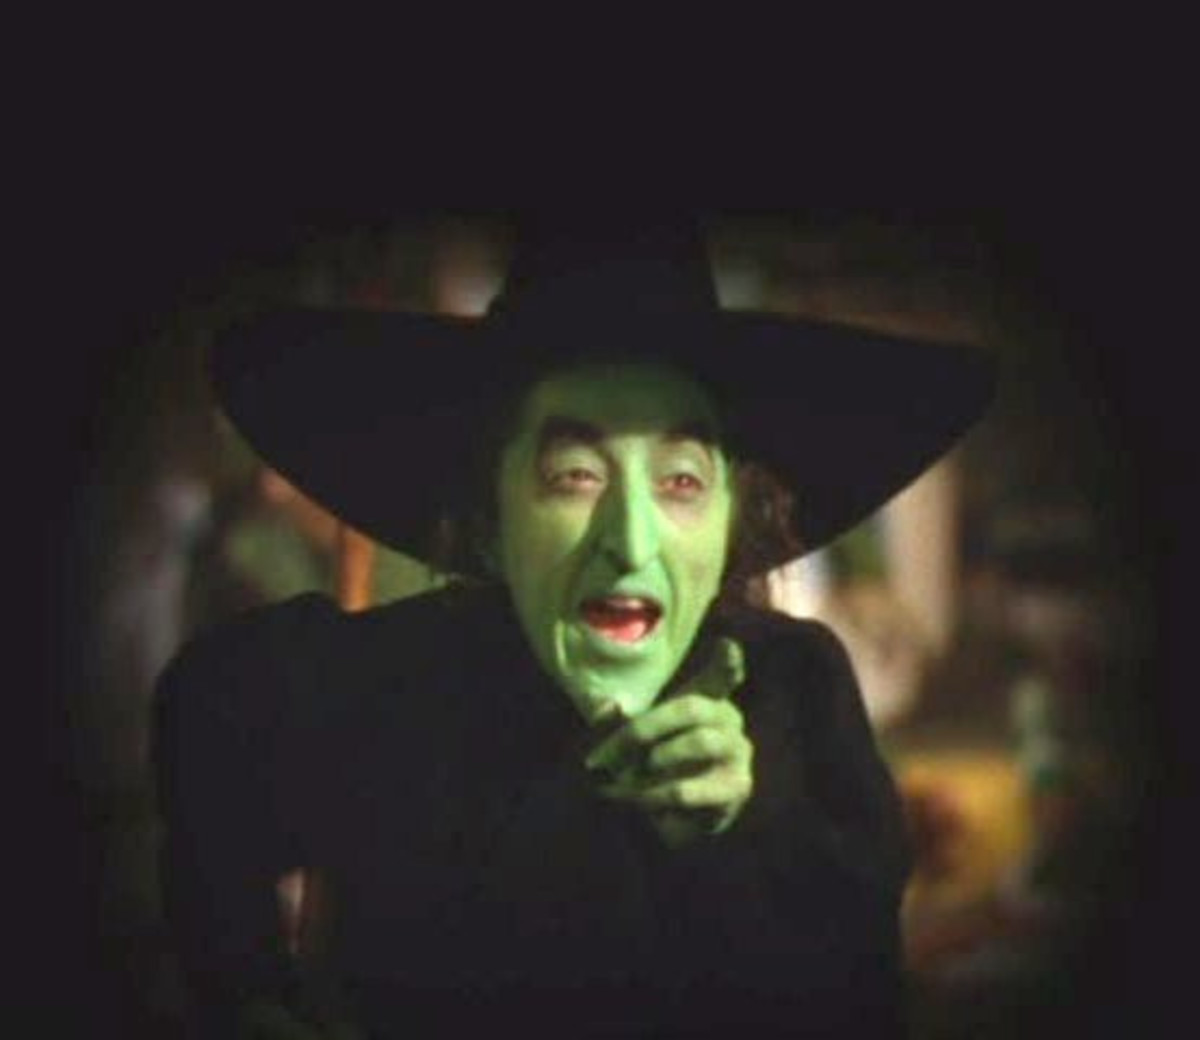 The Halloween Witch's Green Face and the Myth of the Broomstick